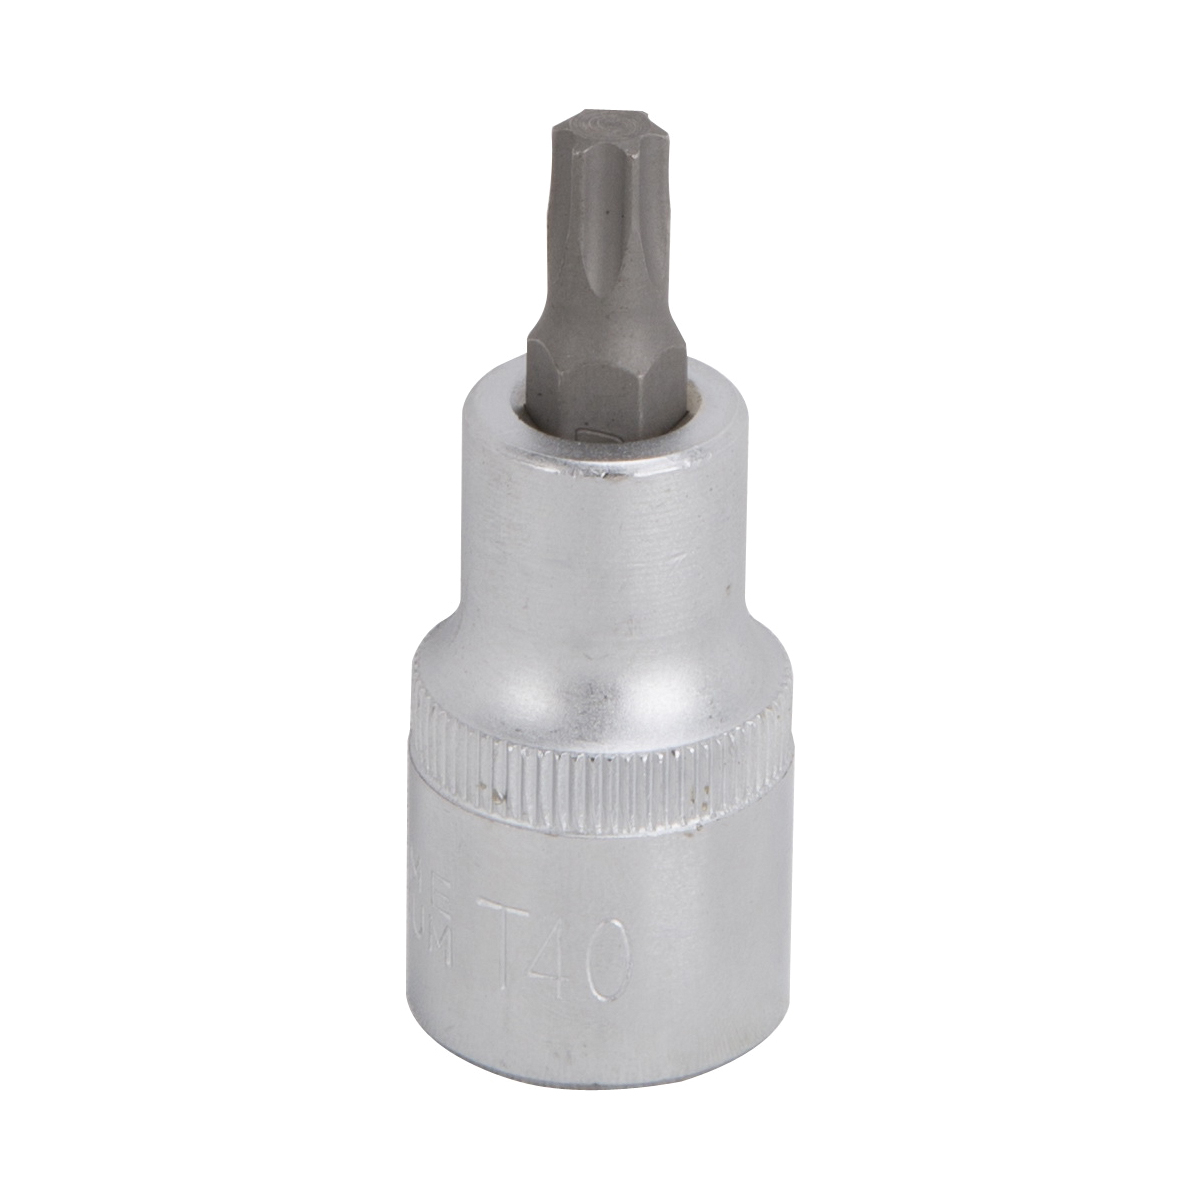 Picture of Vulcan 3505012214 Fractional Star Bit Socket, T40 Tip, 1/2 in Drive